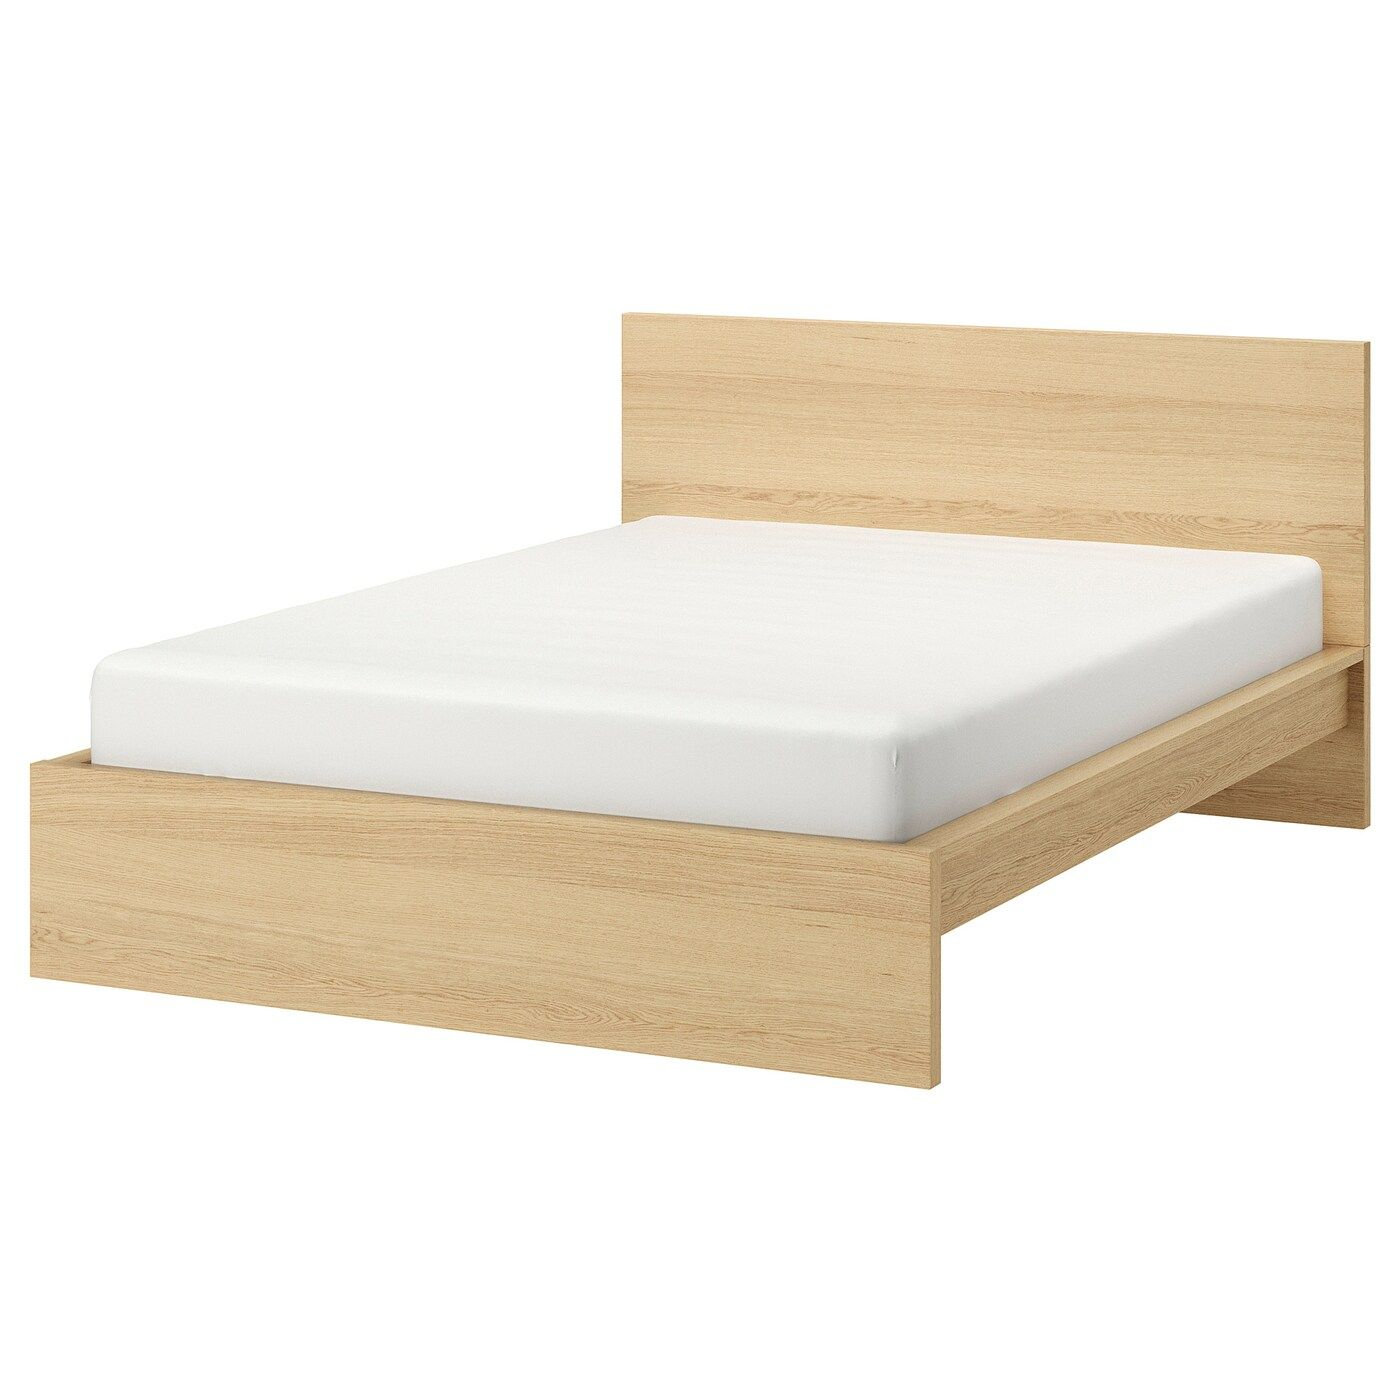 Malm Bed Frame High White Stained Oak Veneer 160x200 Cm In 2020 Bed Meubels Malm Lattenbodems